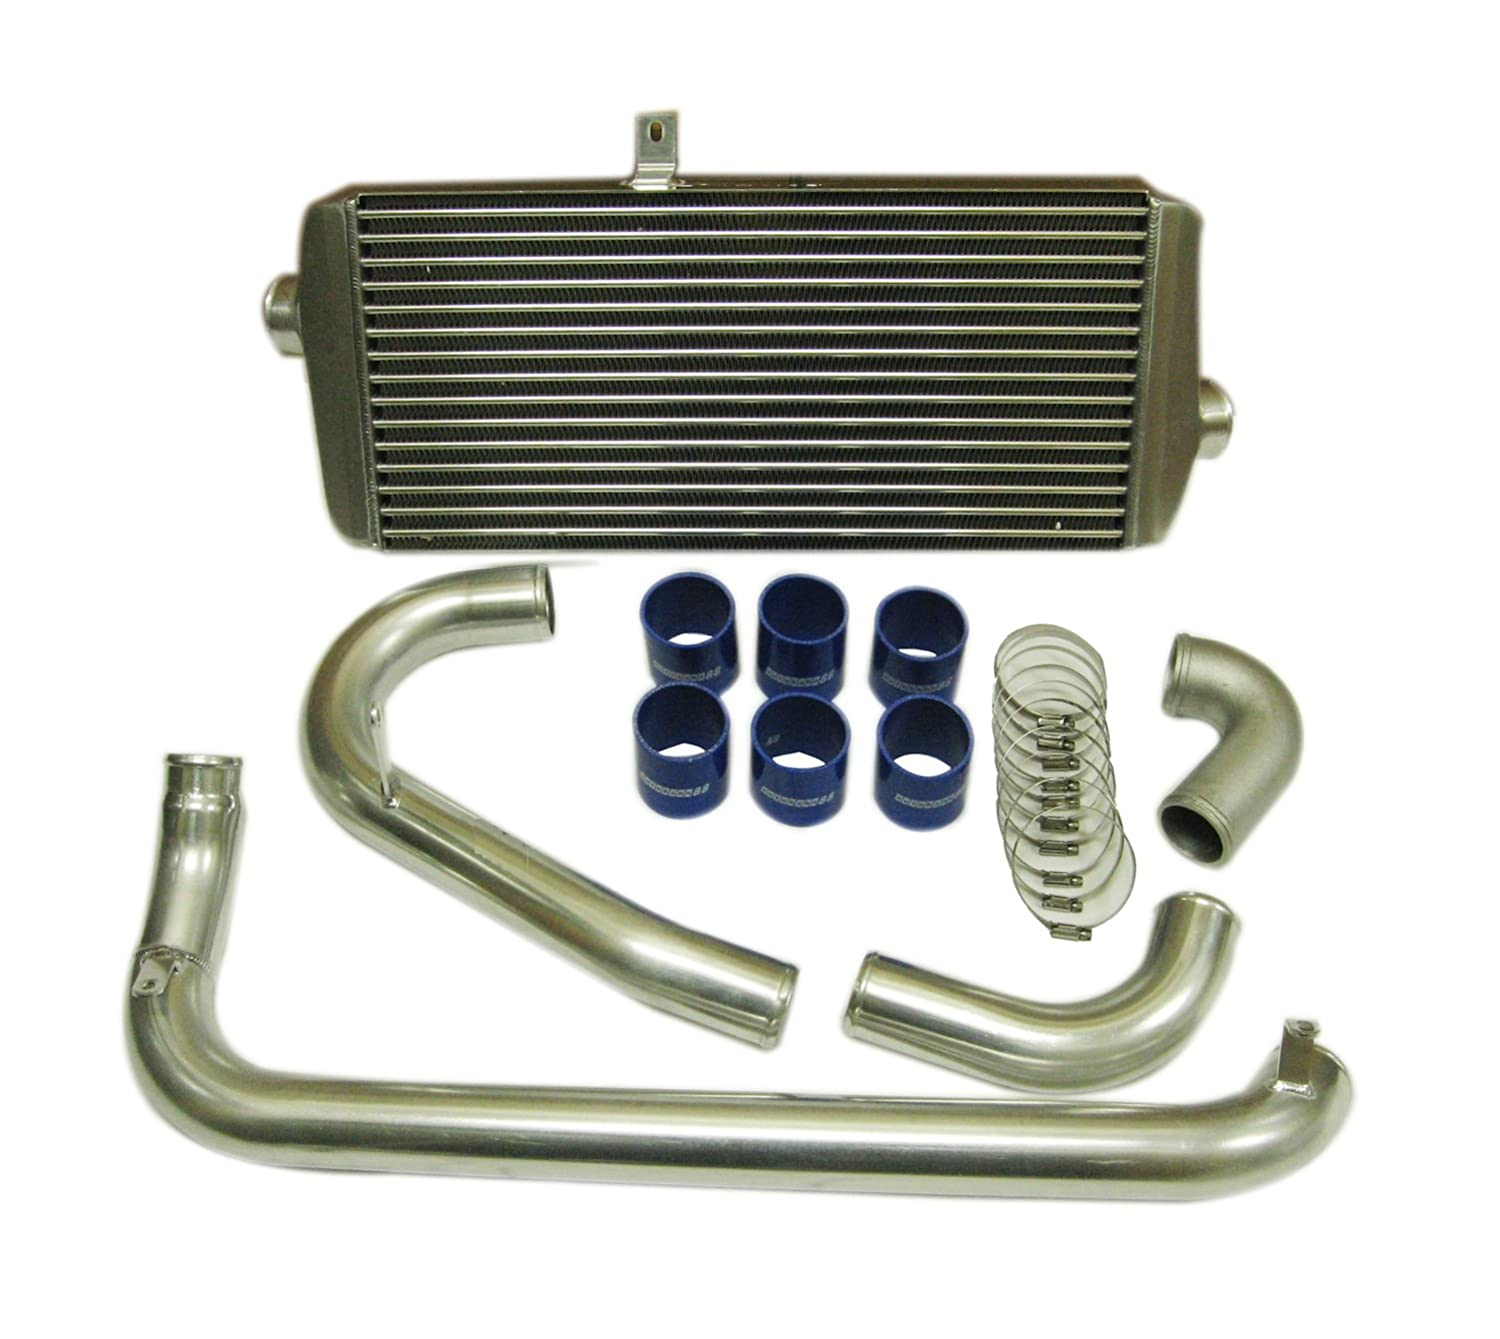 Inlet Outlet 64mm Autobahn88 Universal Front-Mount Intercooler FMIC 2.5 Core Size 550x230x66mm 21.5x9.2x2.6